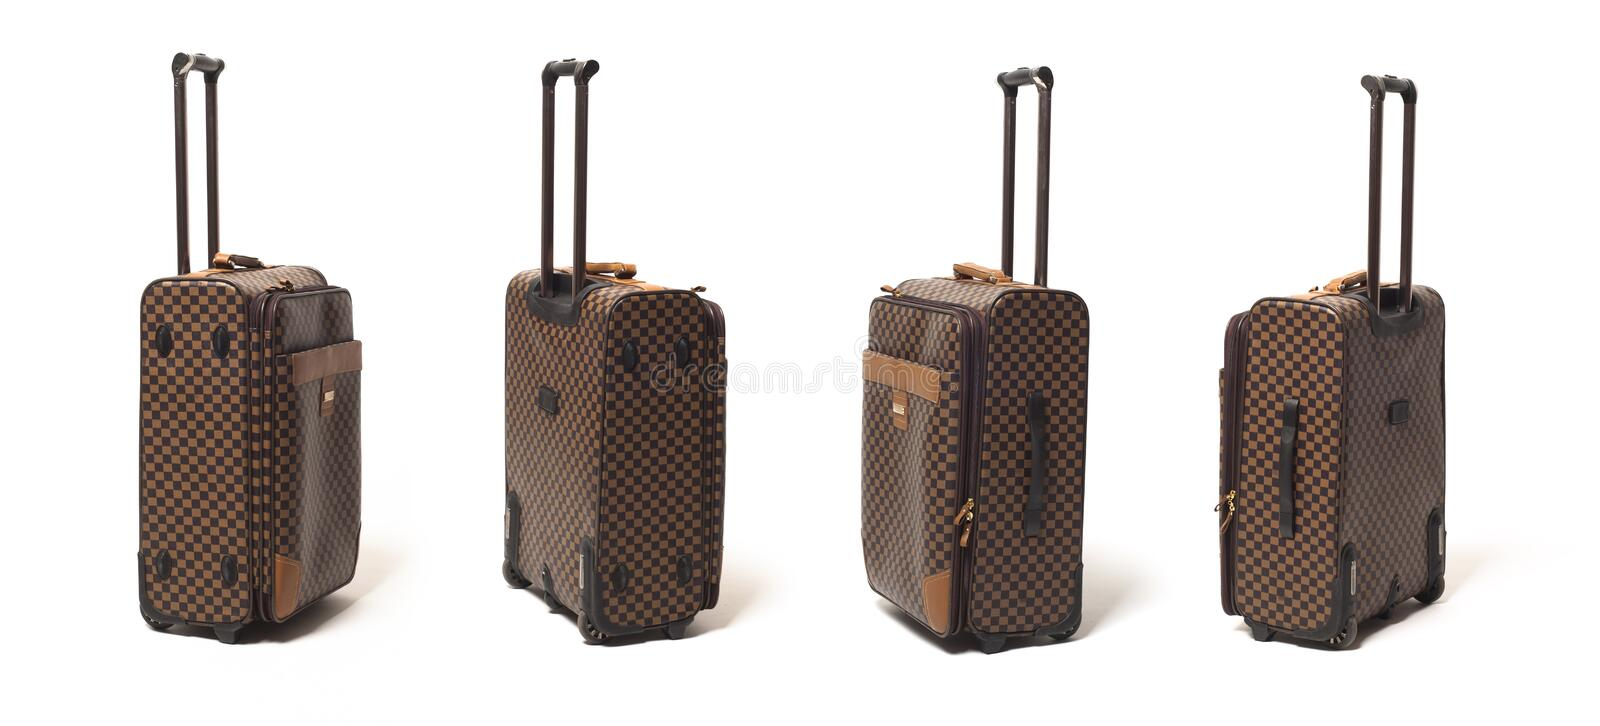 Download Travelling bag stock image. Image of road, chequered - 30372351